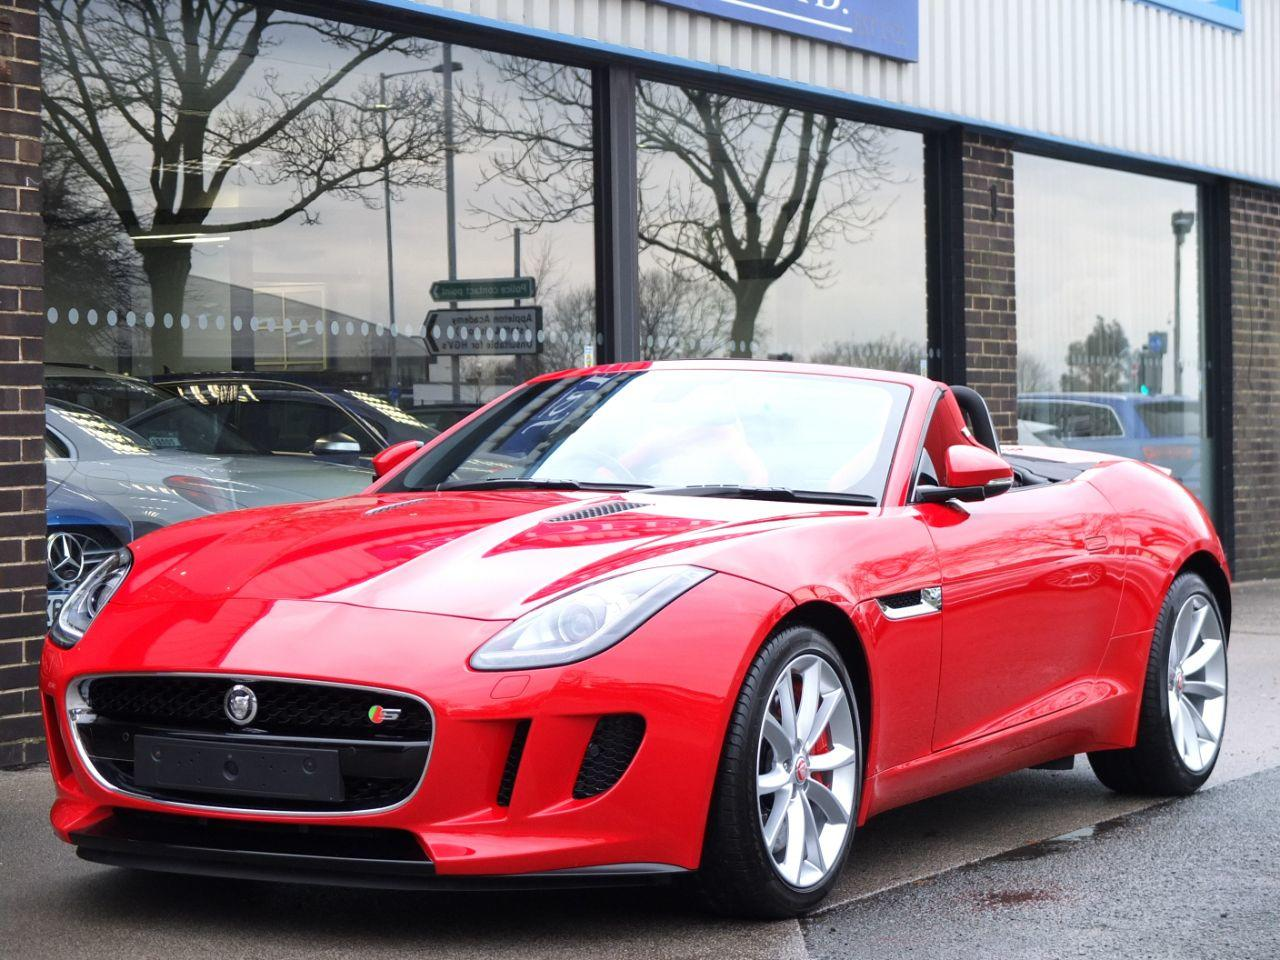 Jaguar F-type Convertible 3.0 Supercharged V6 S Auto 380ps Convertible Petrol Salsa RedJaguar F-type Convertible 3.0 Supercharged V6 S Auto 380ps Convertible Petrol Salsa Red at fa Roper Ltd Bradford